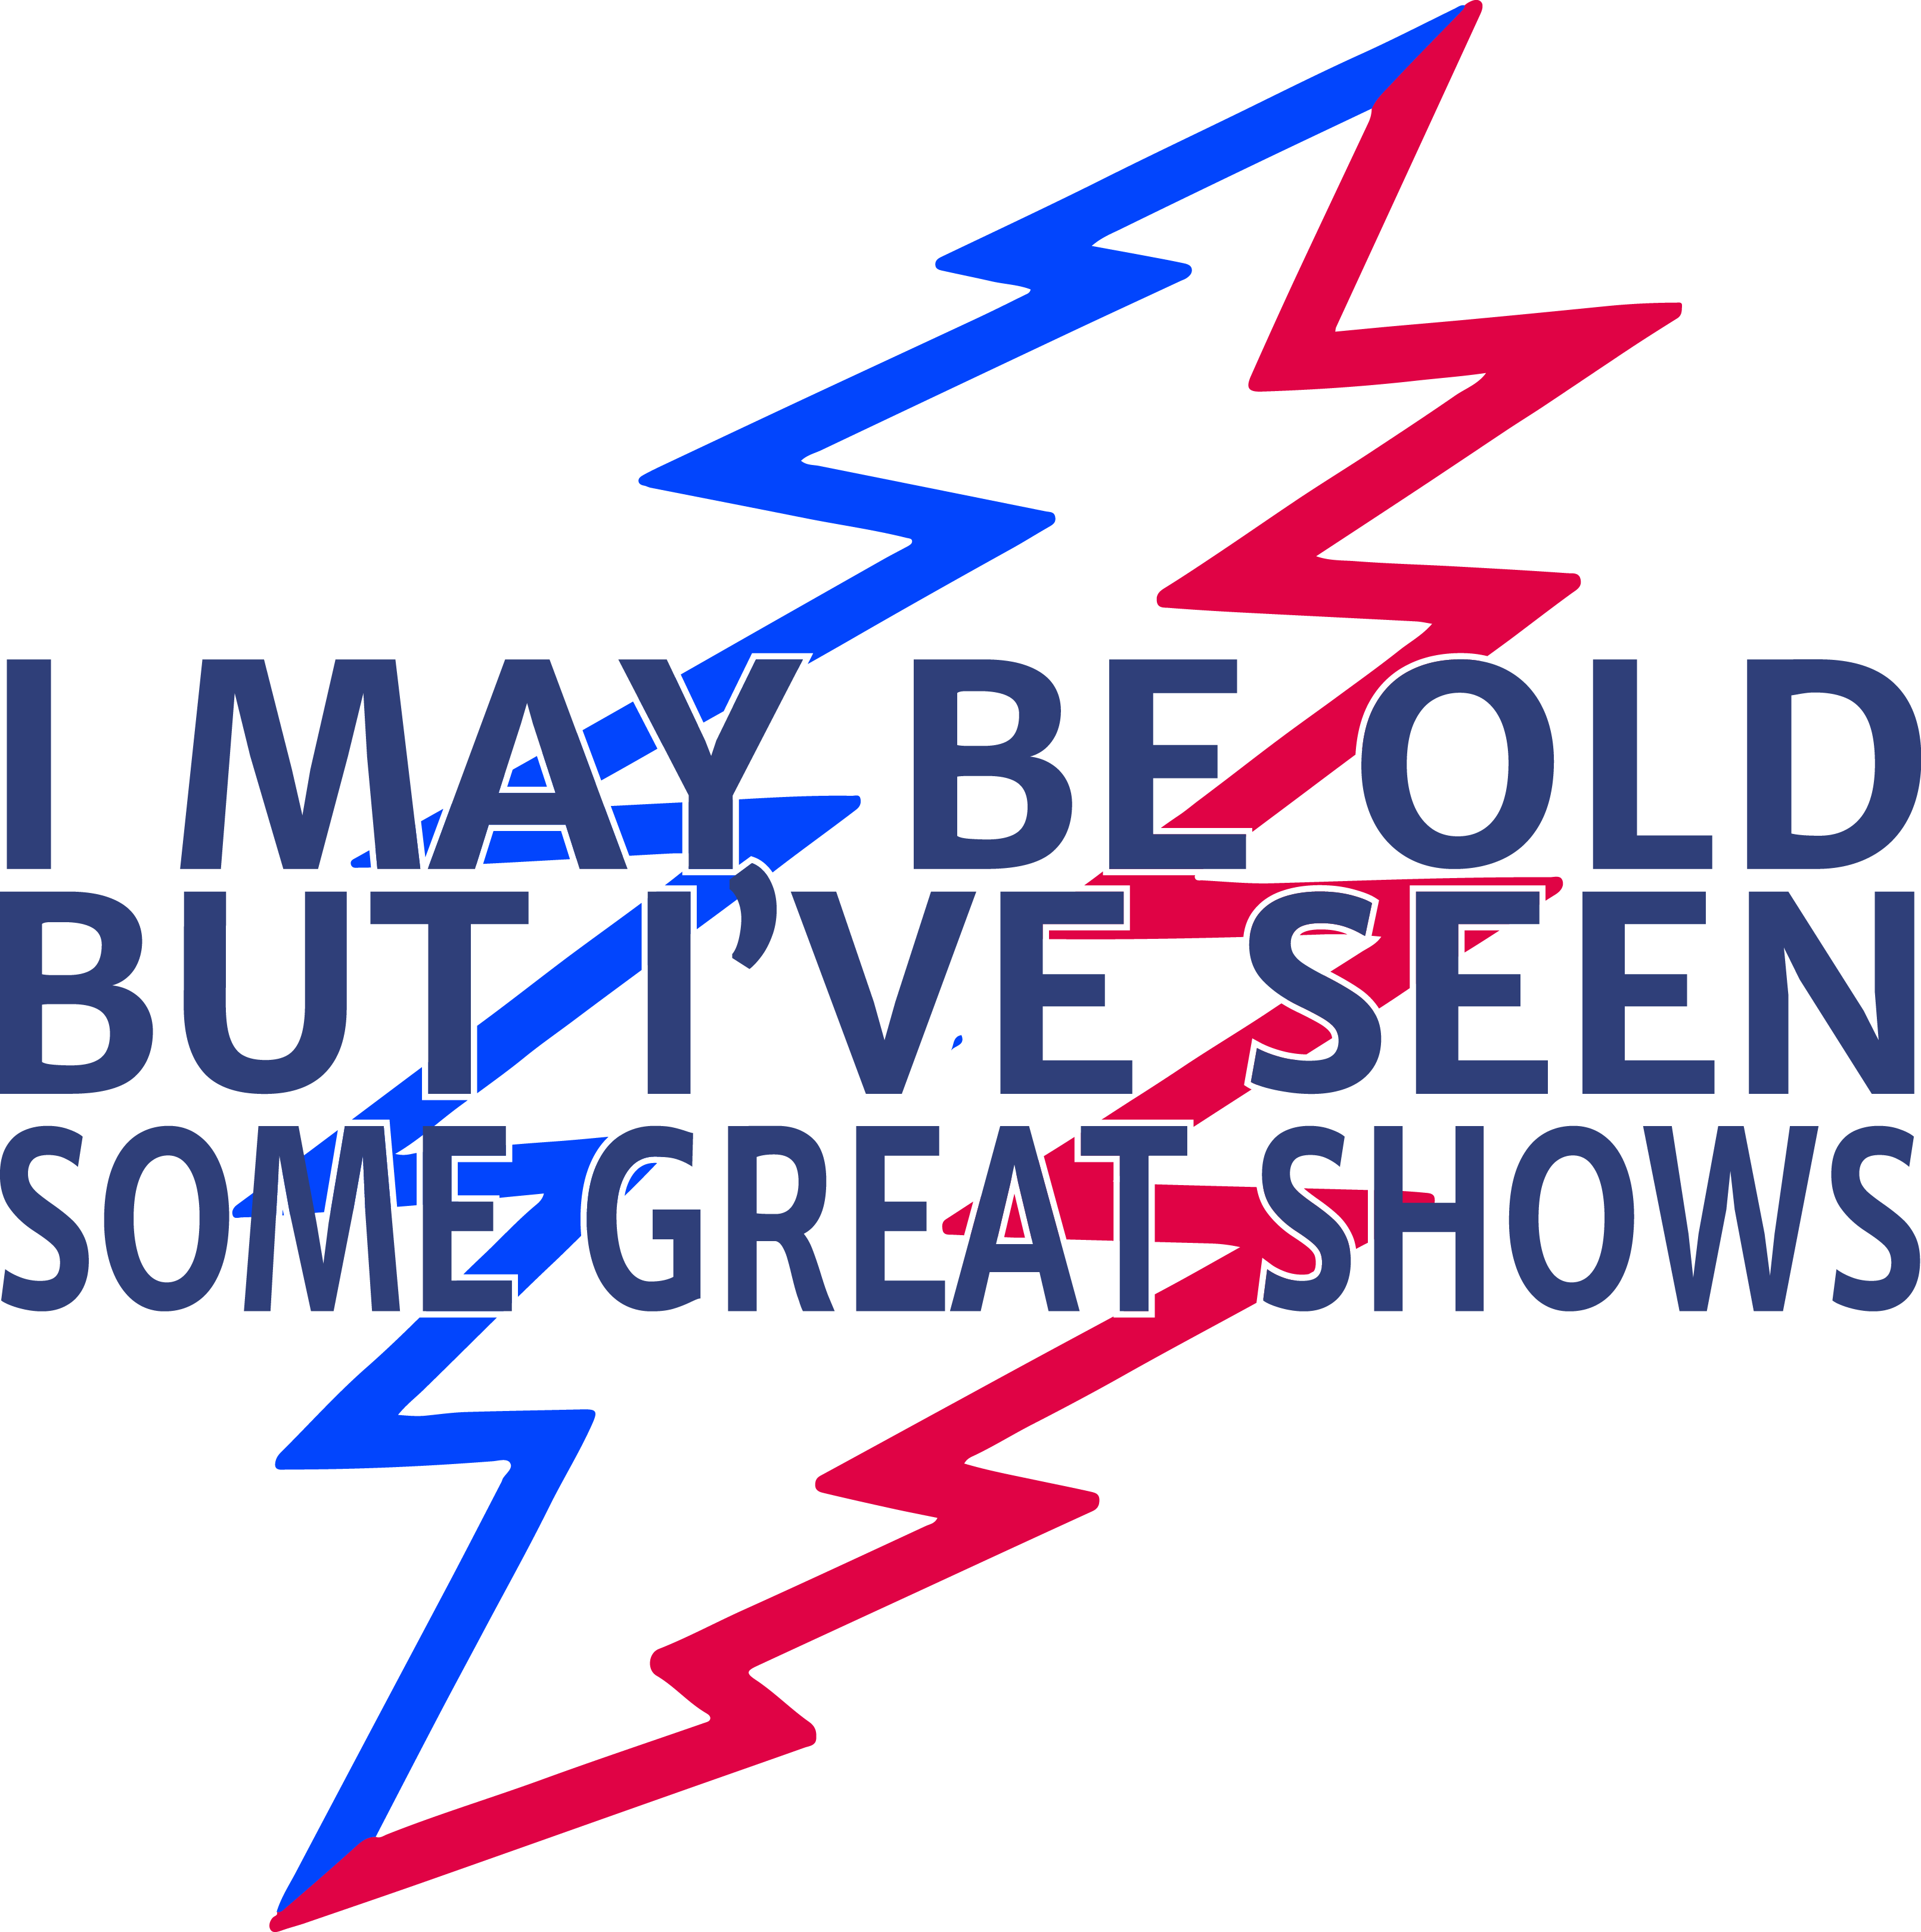 I May Be Old But I've Seen Some Great Shows | Grateful Dead Edition by Apparel Thee Well